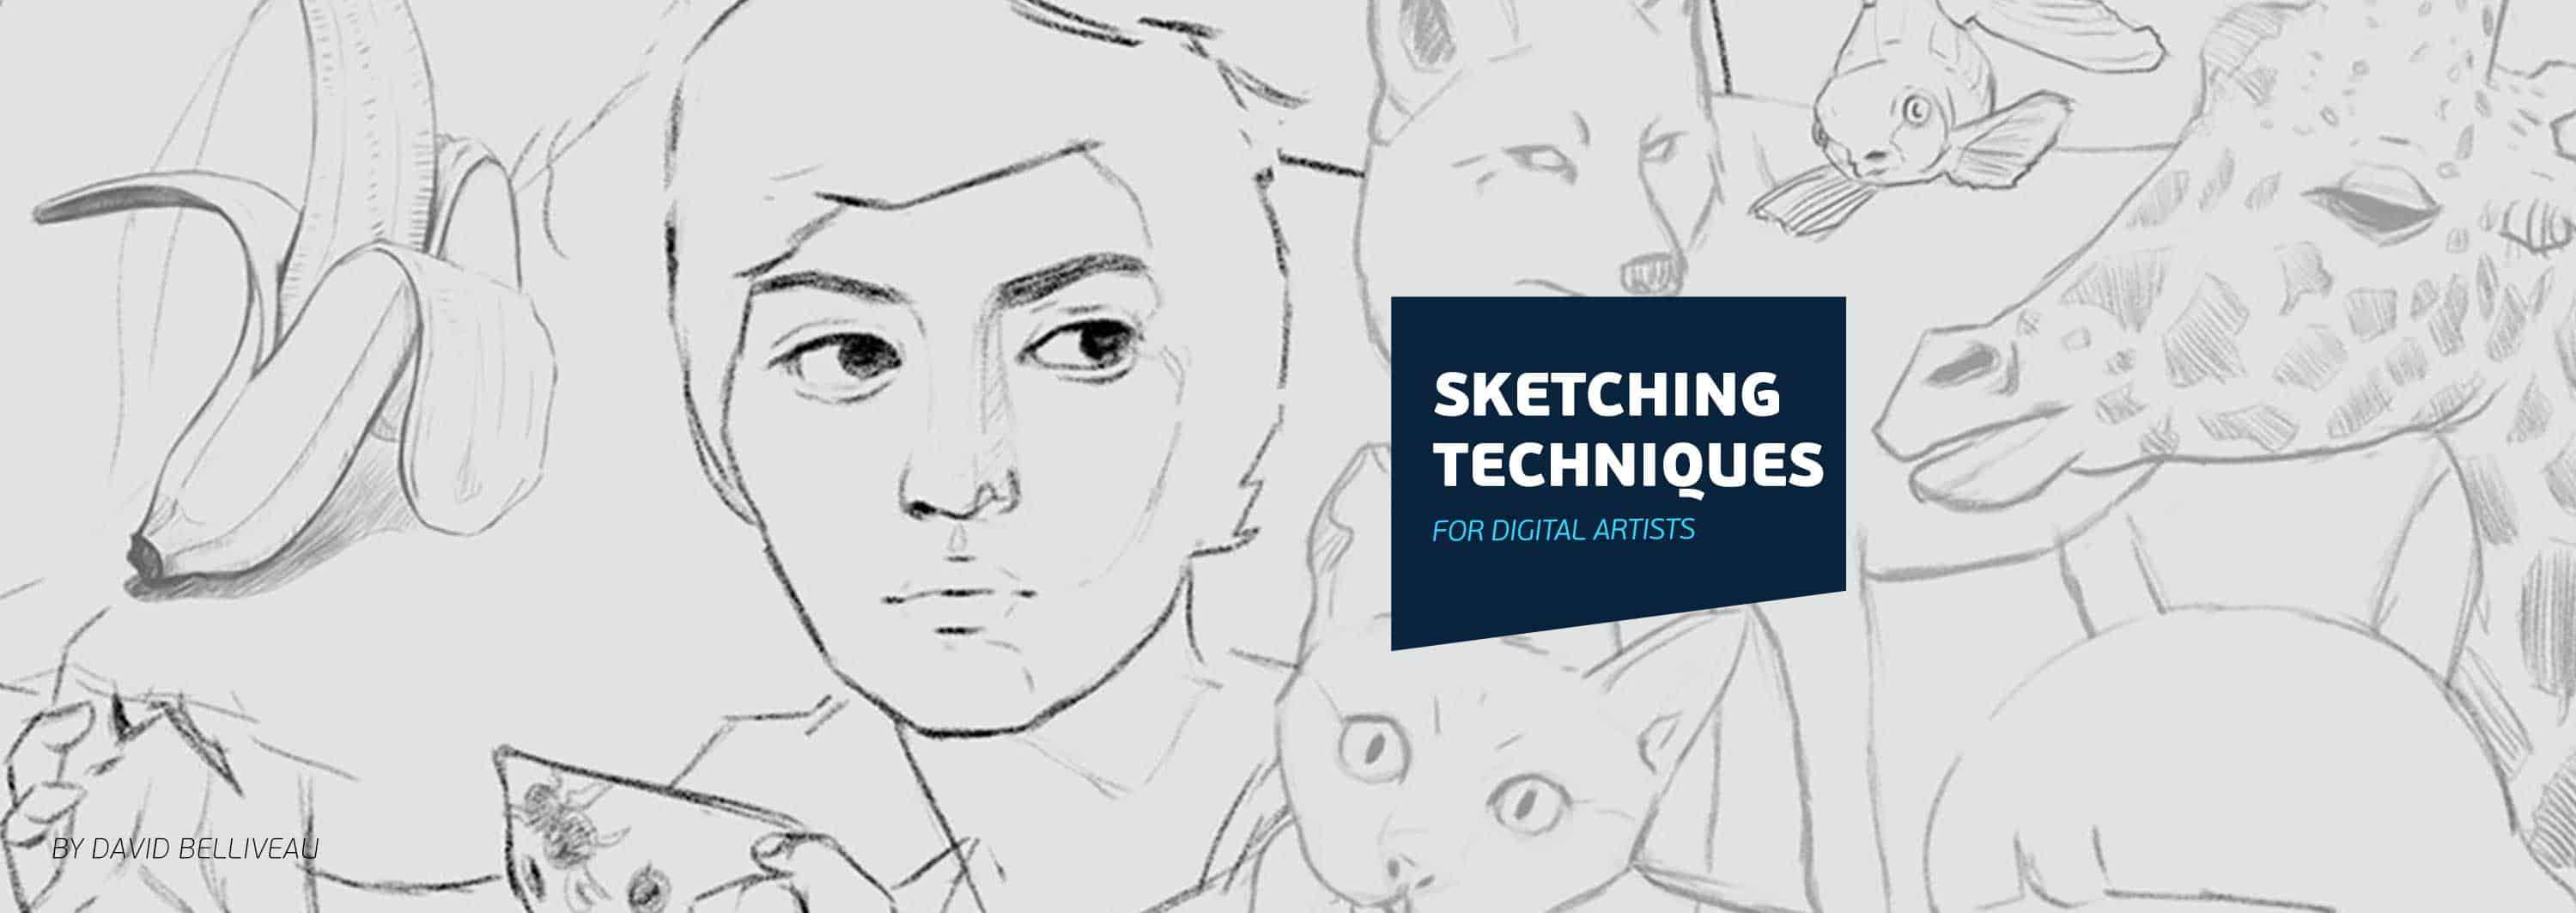 Sketching Techniques for Digital Artists | Paintable.cc Digital Painting - Learn the Art of Digital Painting! #digitalpainting #digitalart